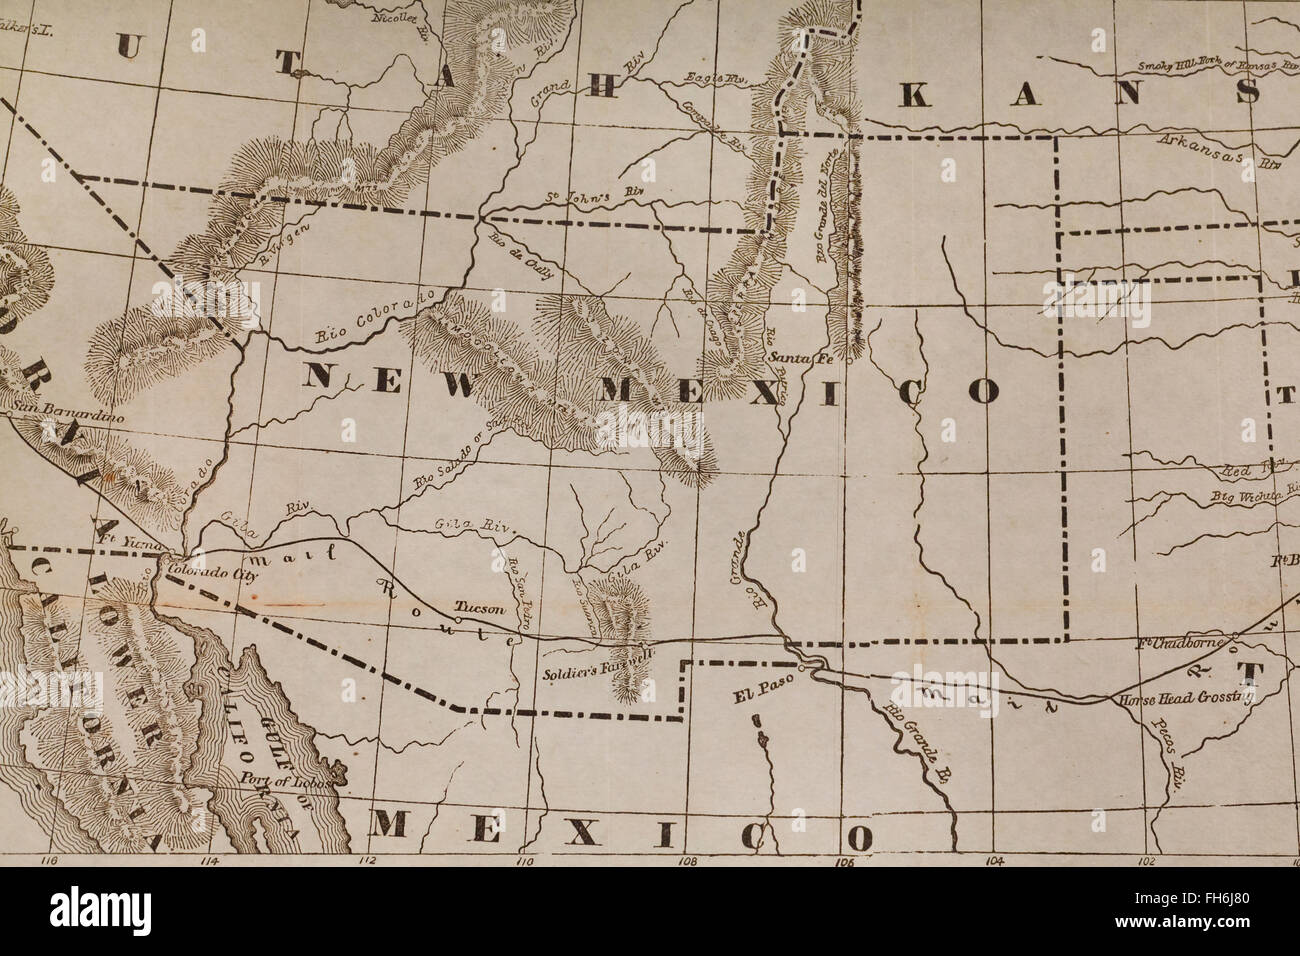 United States Map 1800s Stock Photos United States Map 1800s Stock - Us-map-1800s